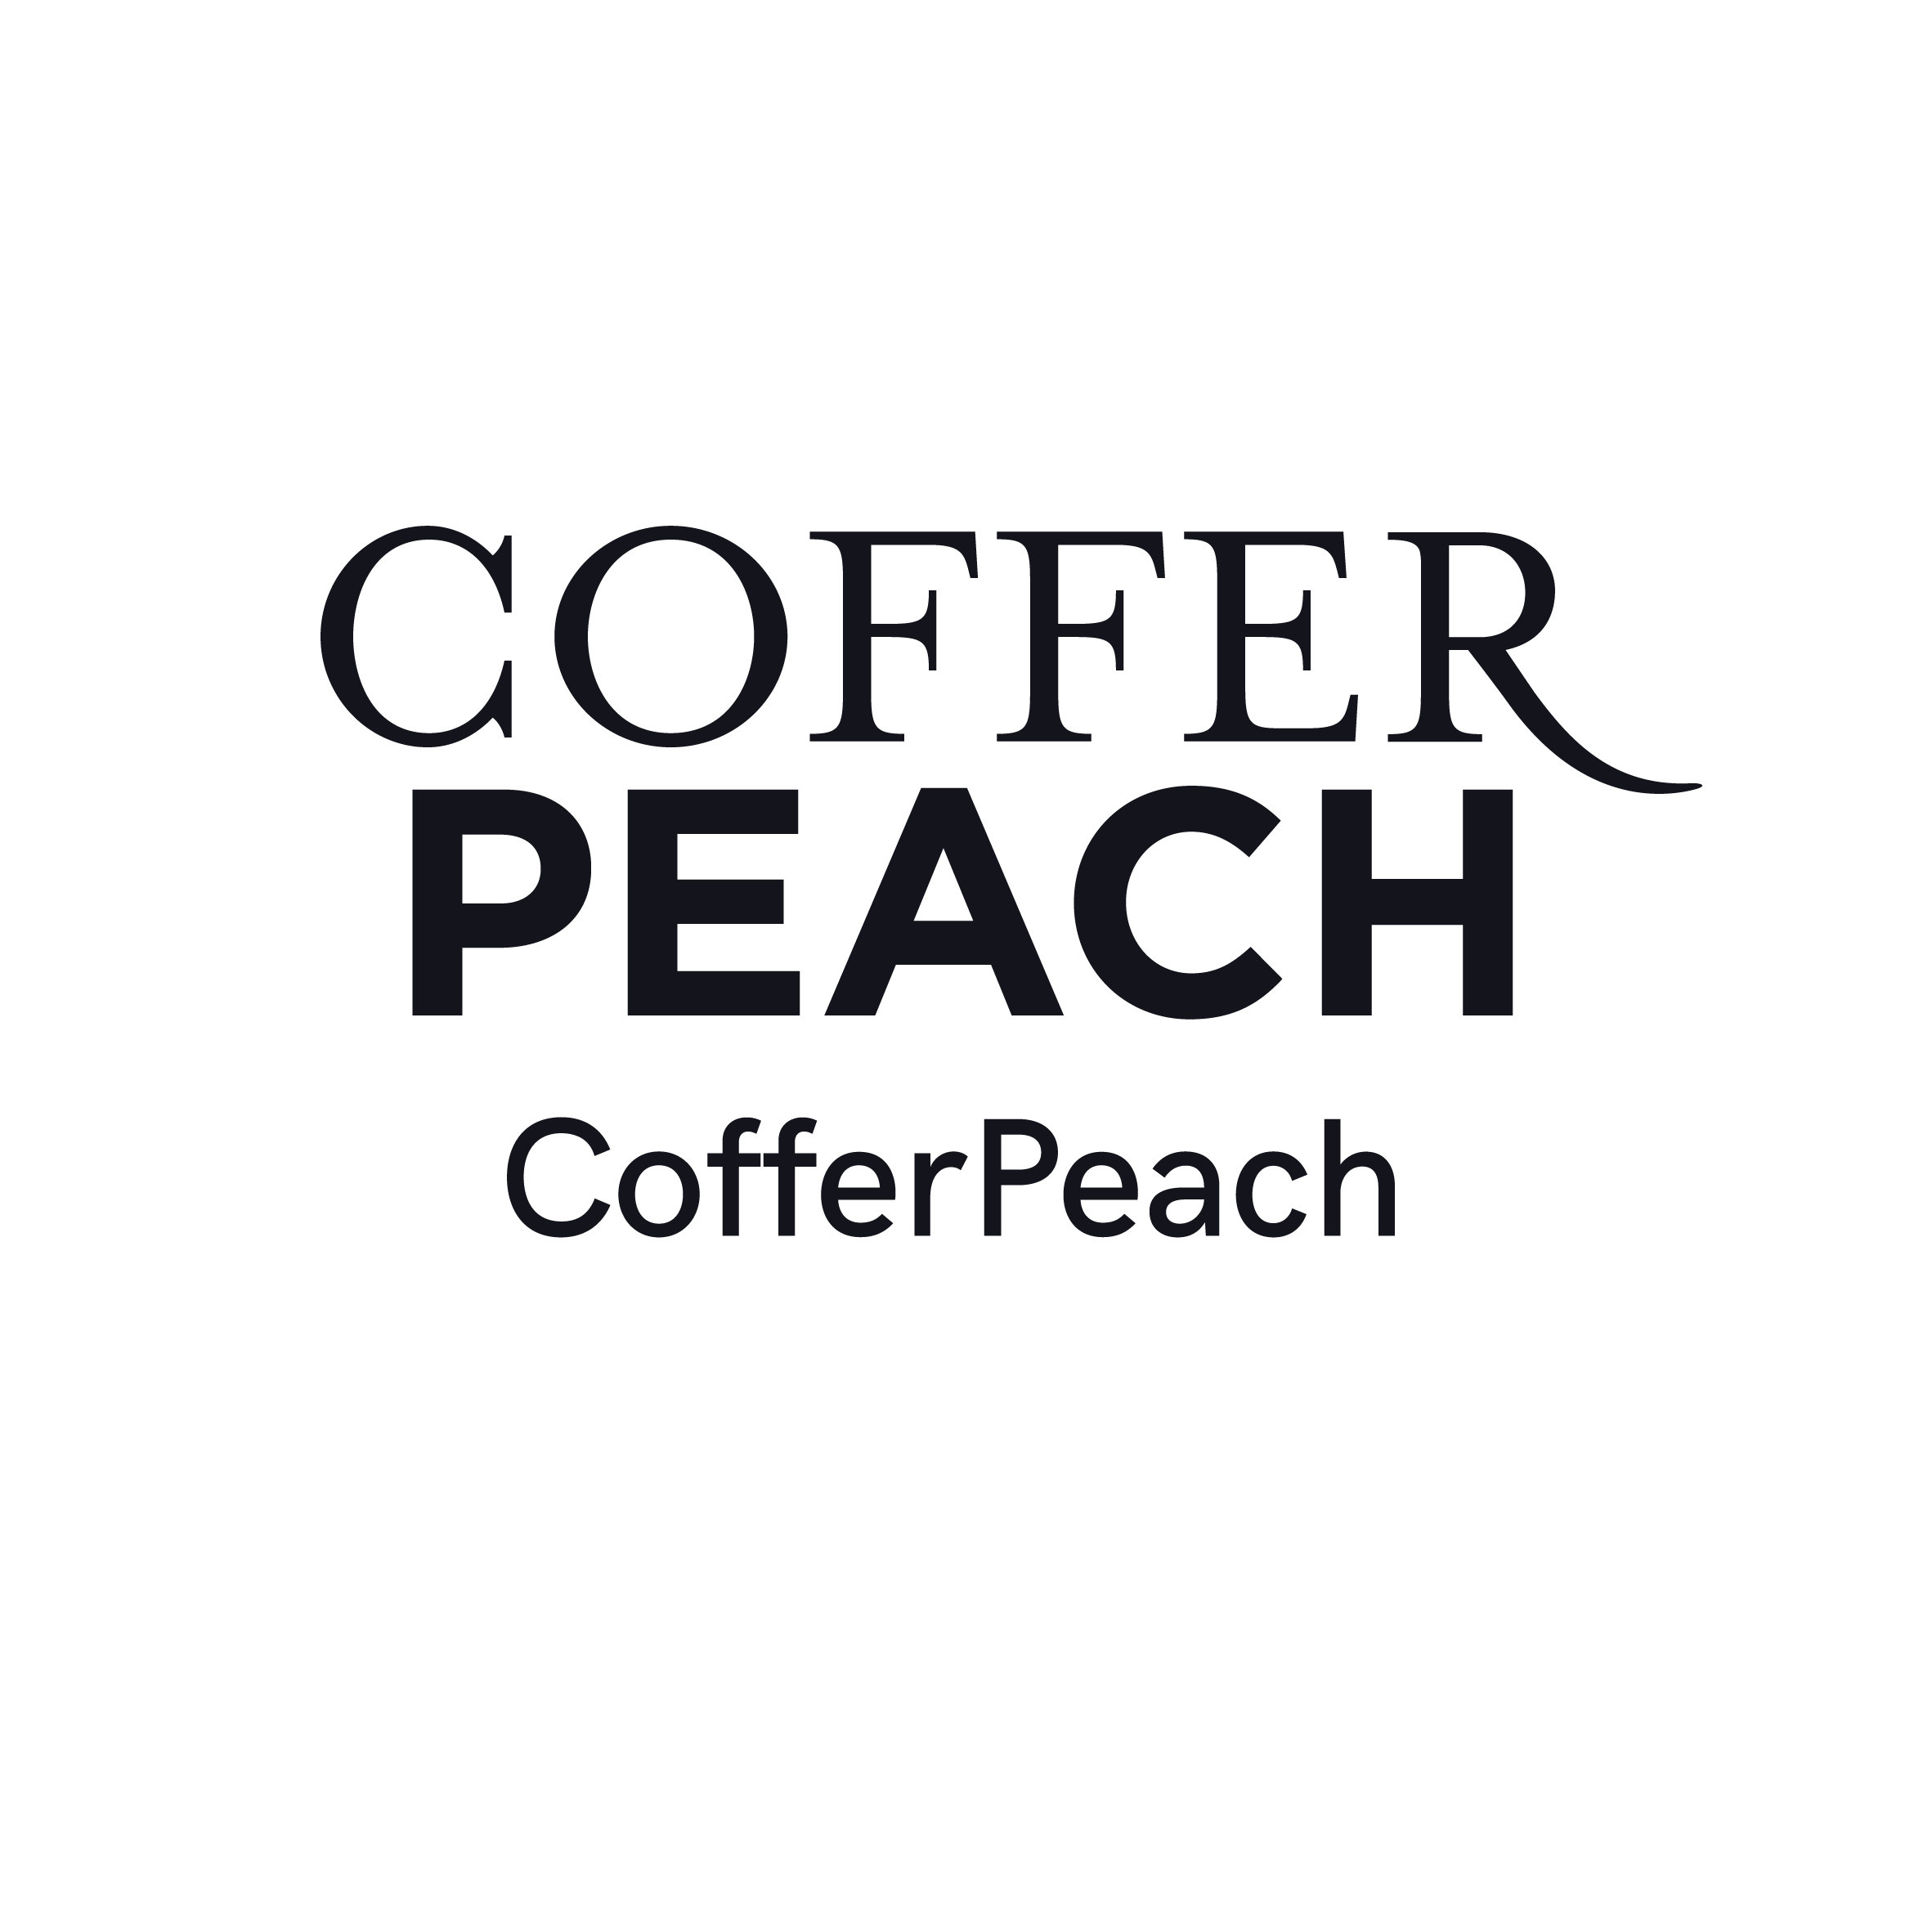 CofferPeach